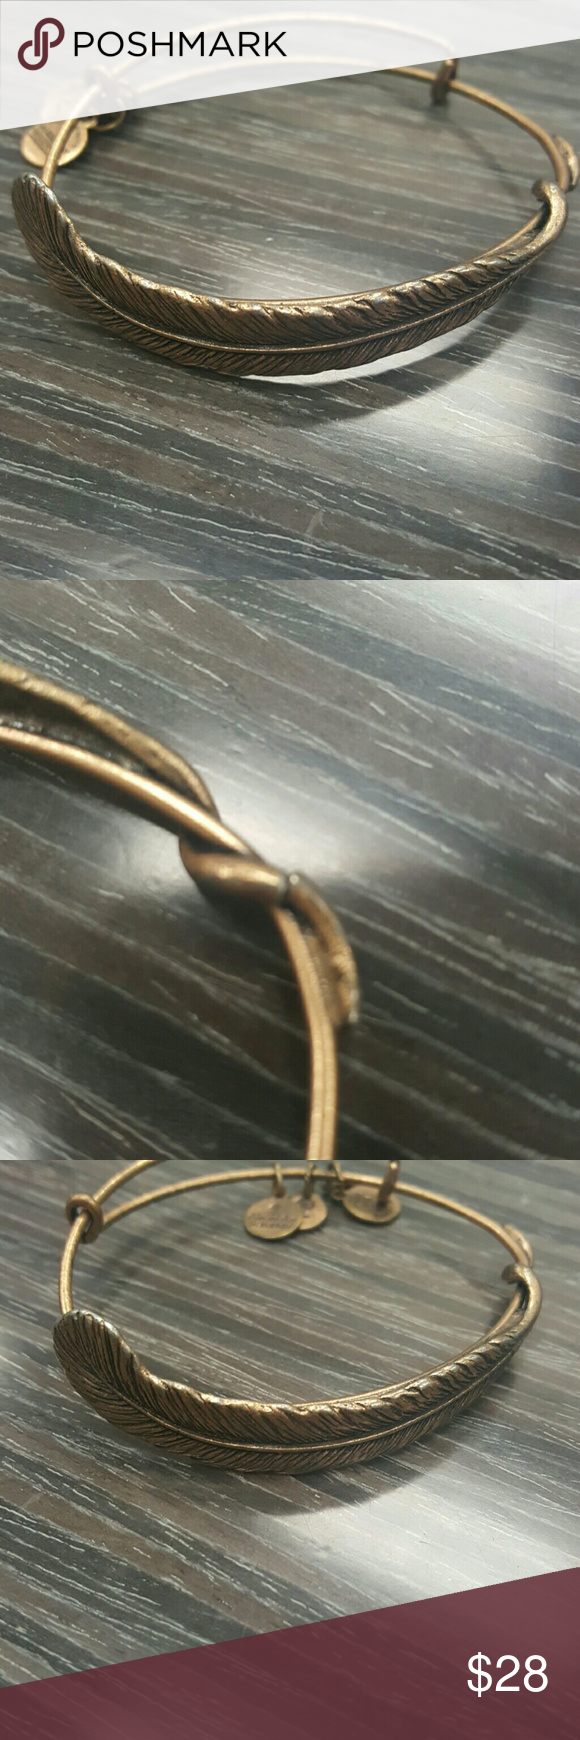 Alex & Ani Quill Feather Bangle Please note the second photo. It was purchased that way and has not had any affect on wear. Does have slight signs of wear but in great condition. Does not come with card or original box. Alex & Ani Jewelry Bracelets